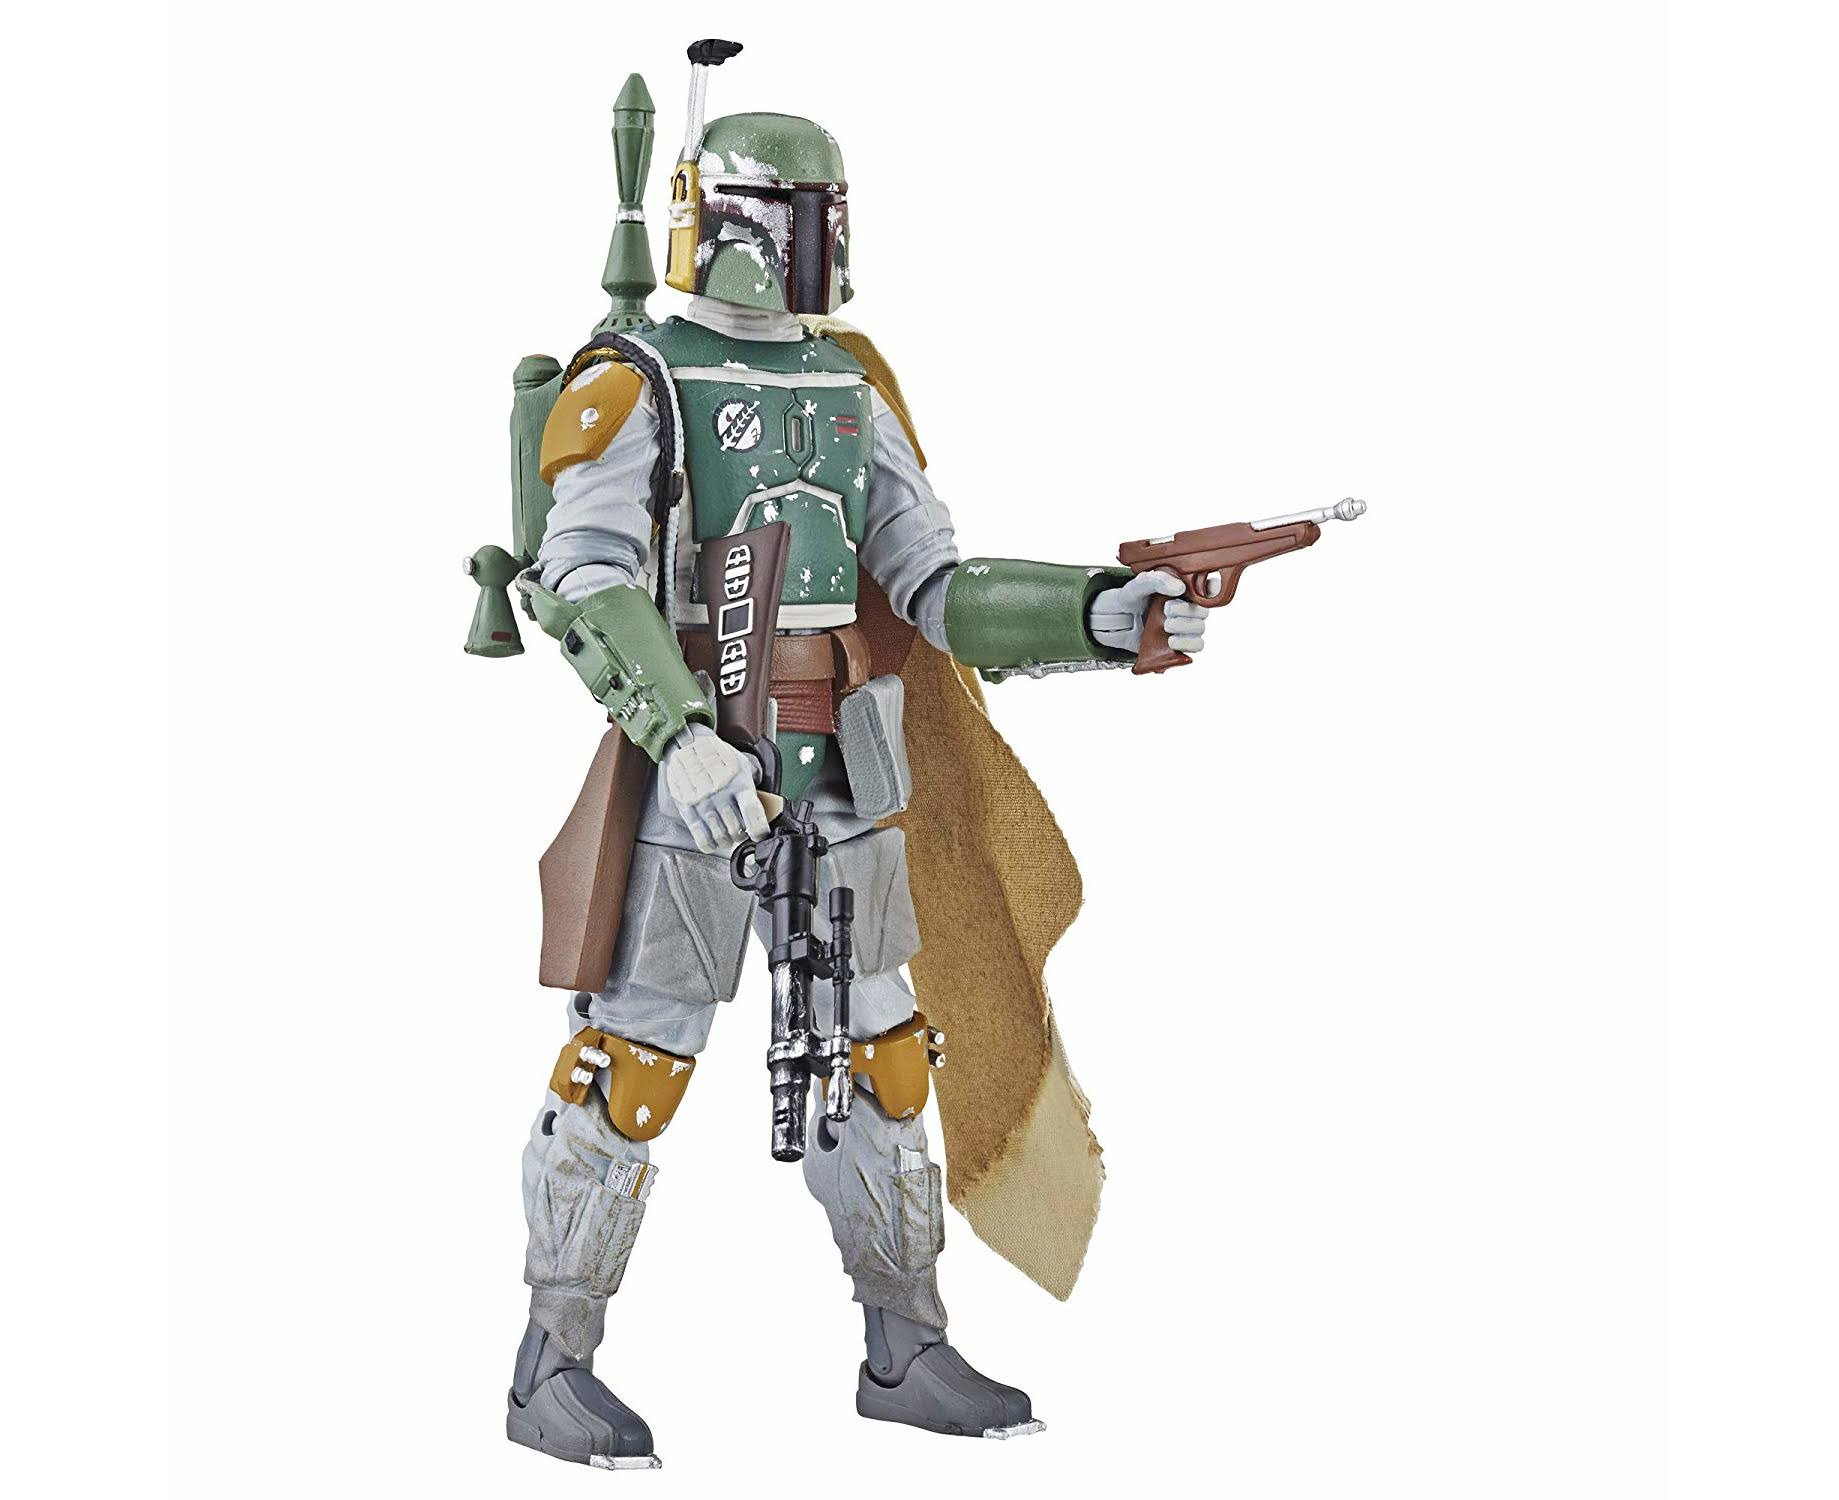 Hasbro Star Wars The Black Series Archive Boba Fett Figure - 6""